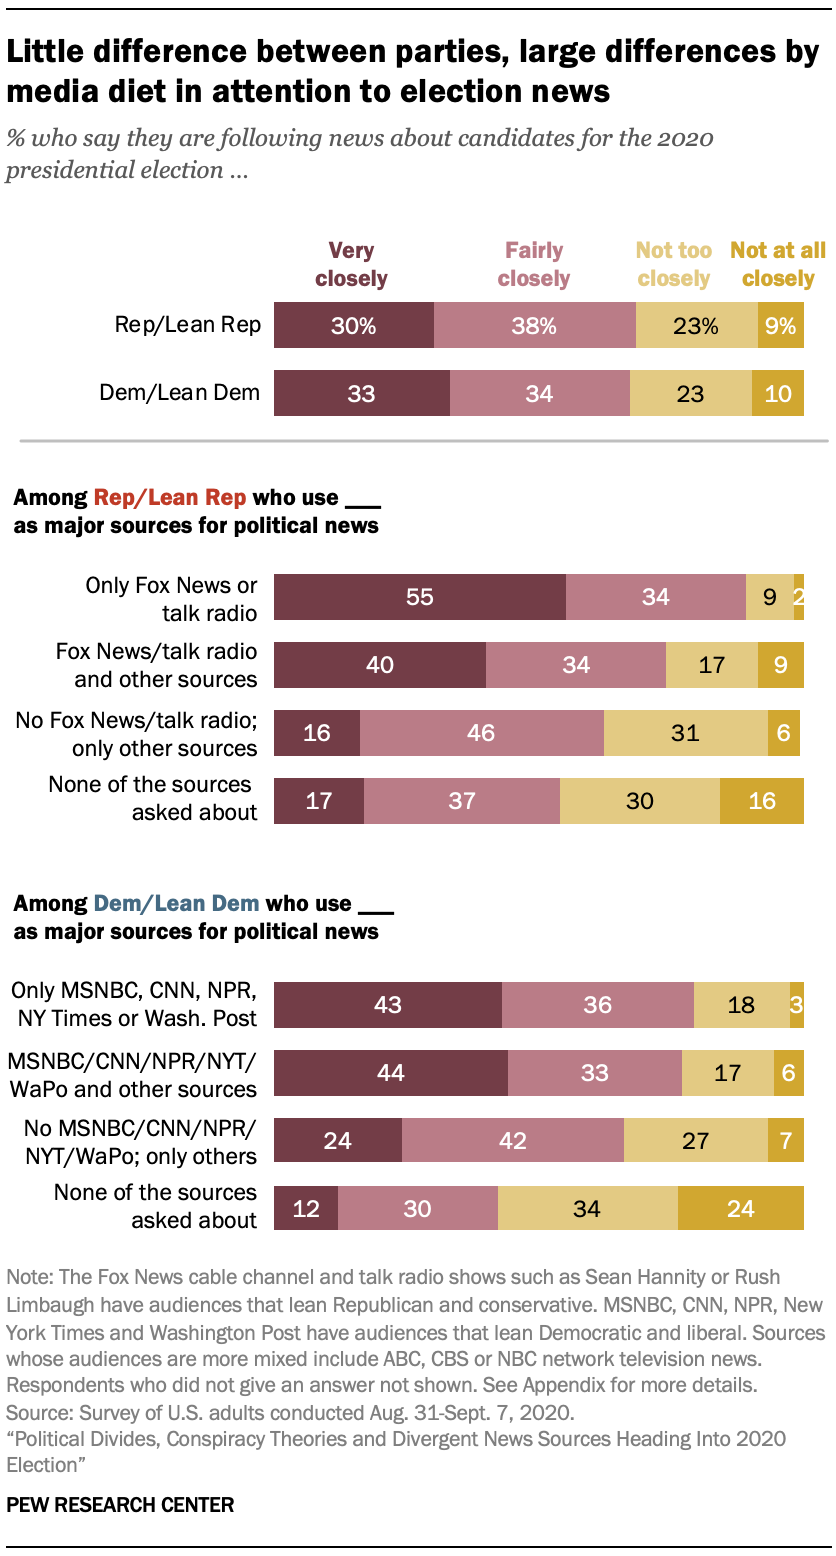 Little difference between parties, large differences by media diet in attention to election news